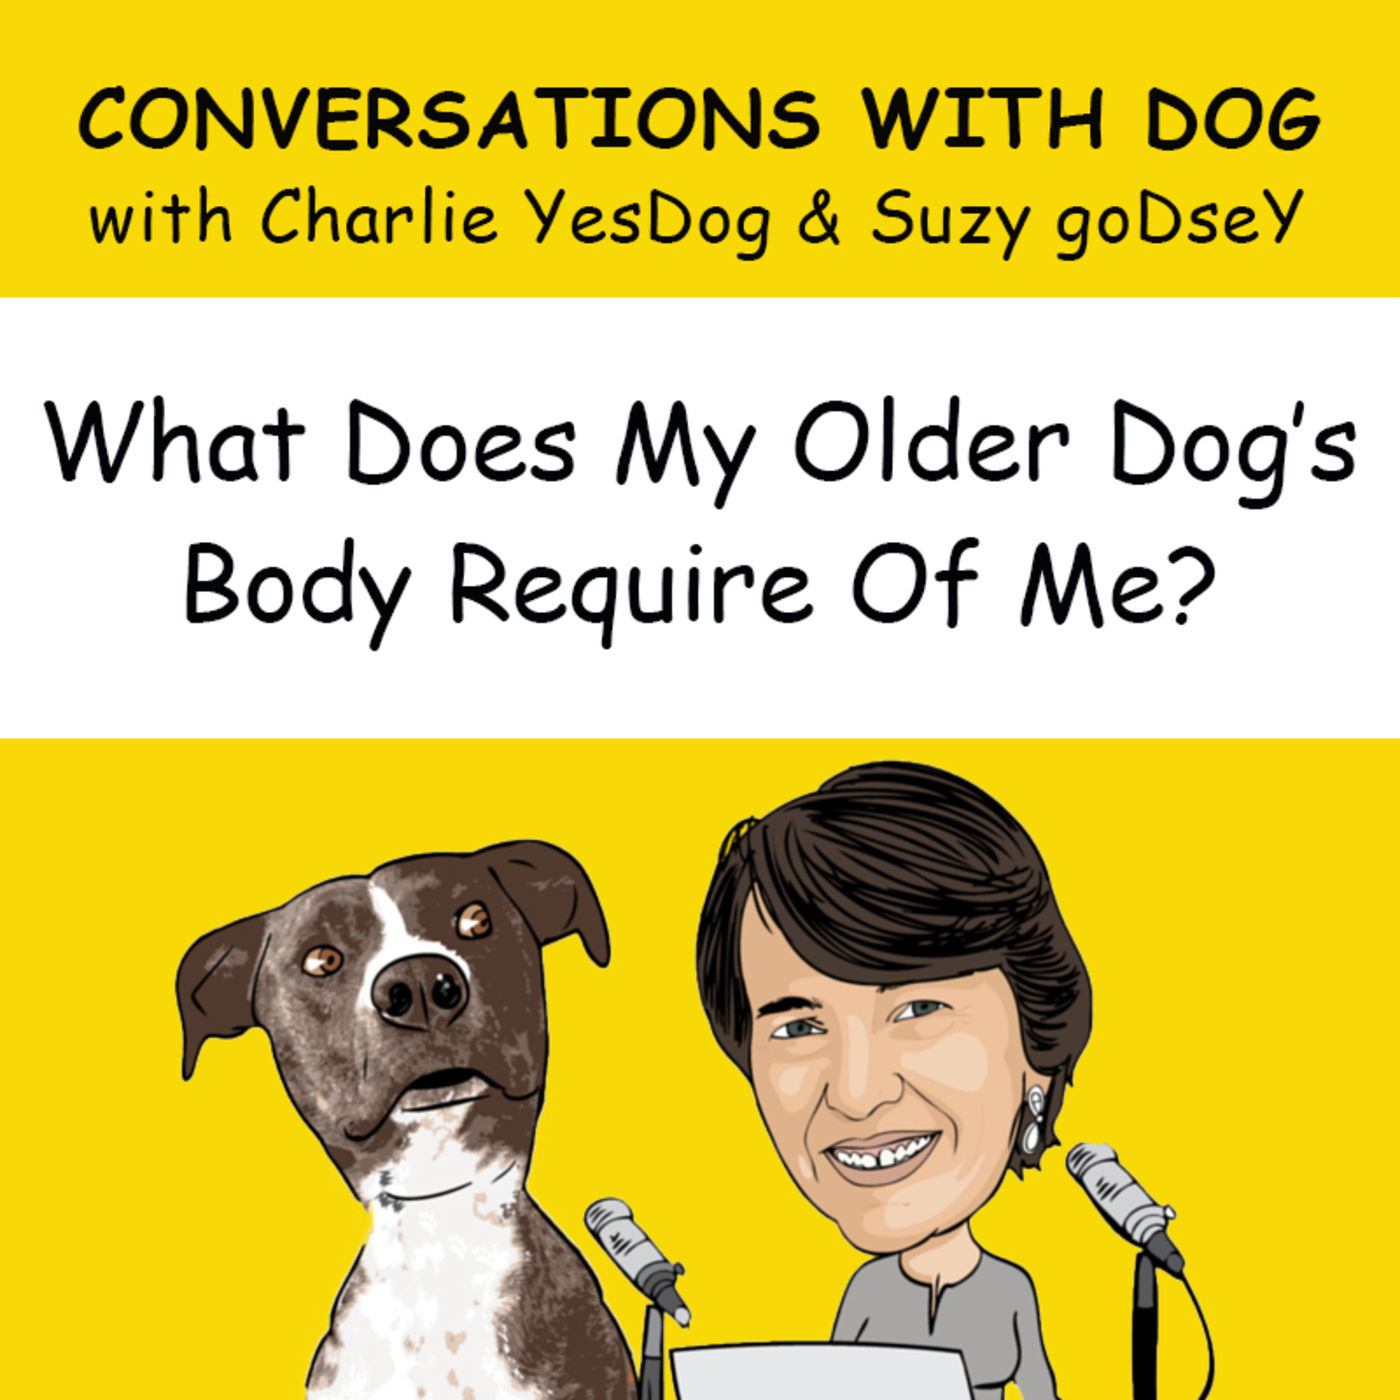 What Does My Older Dog's Body Require Of Me?